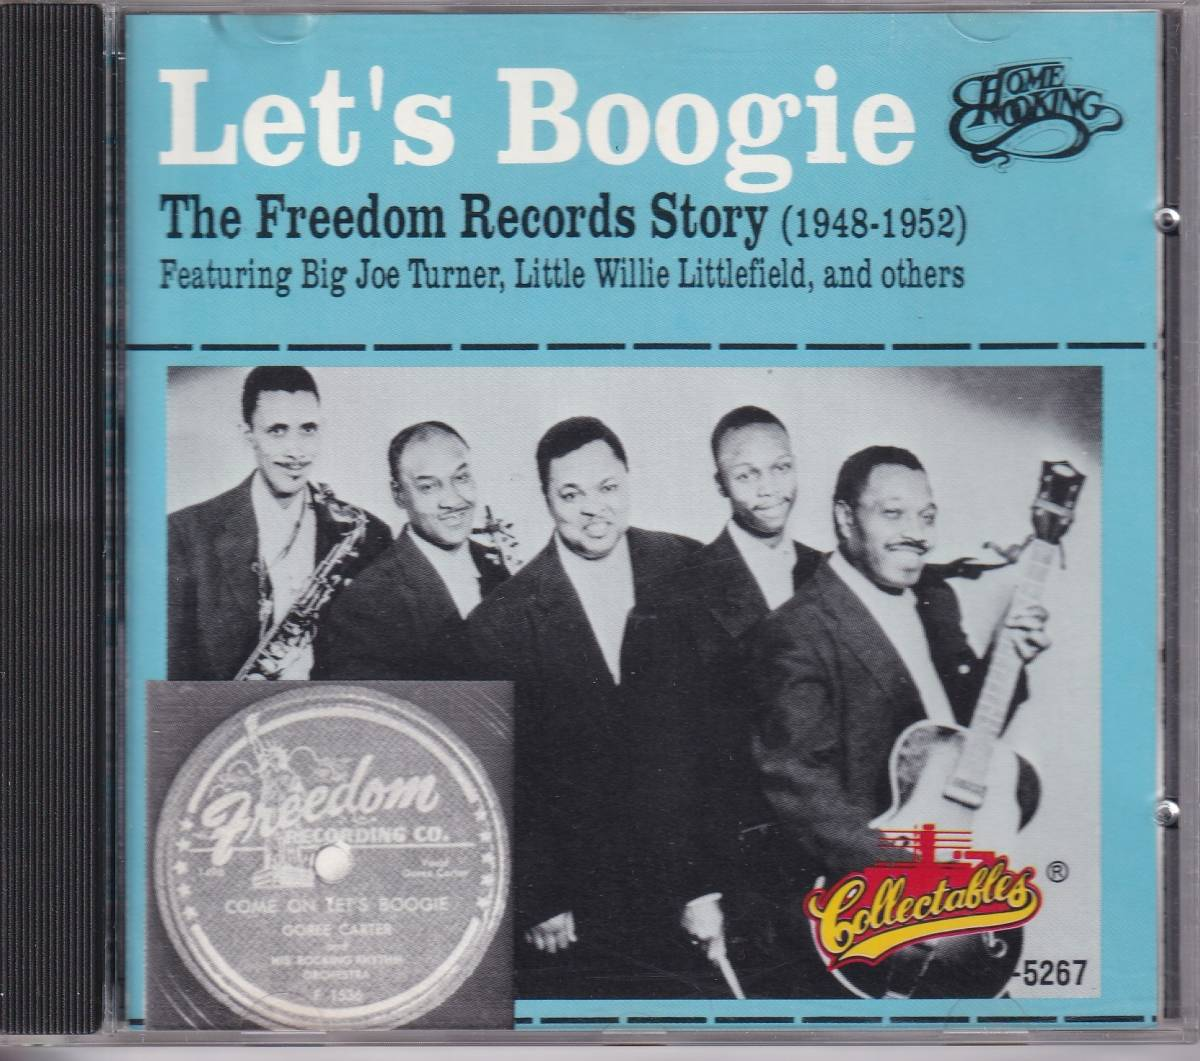 CD(U.S.) Let's Boogie : The Freedom Records Story(1948-1952) (Collectables COL-CD-5267)